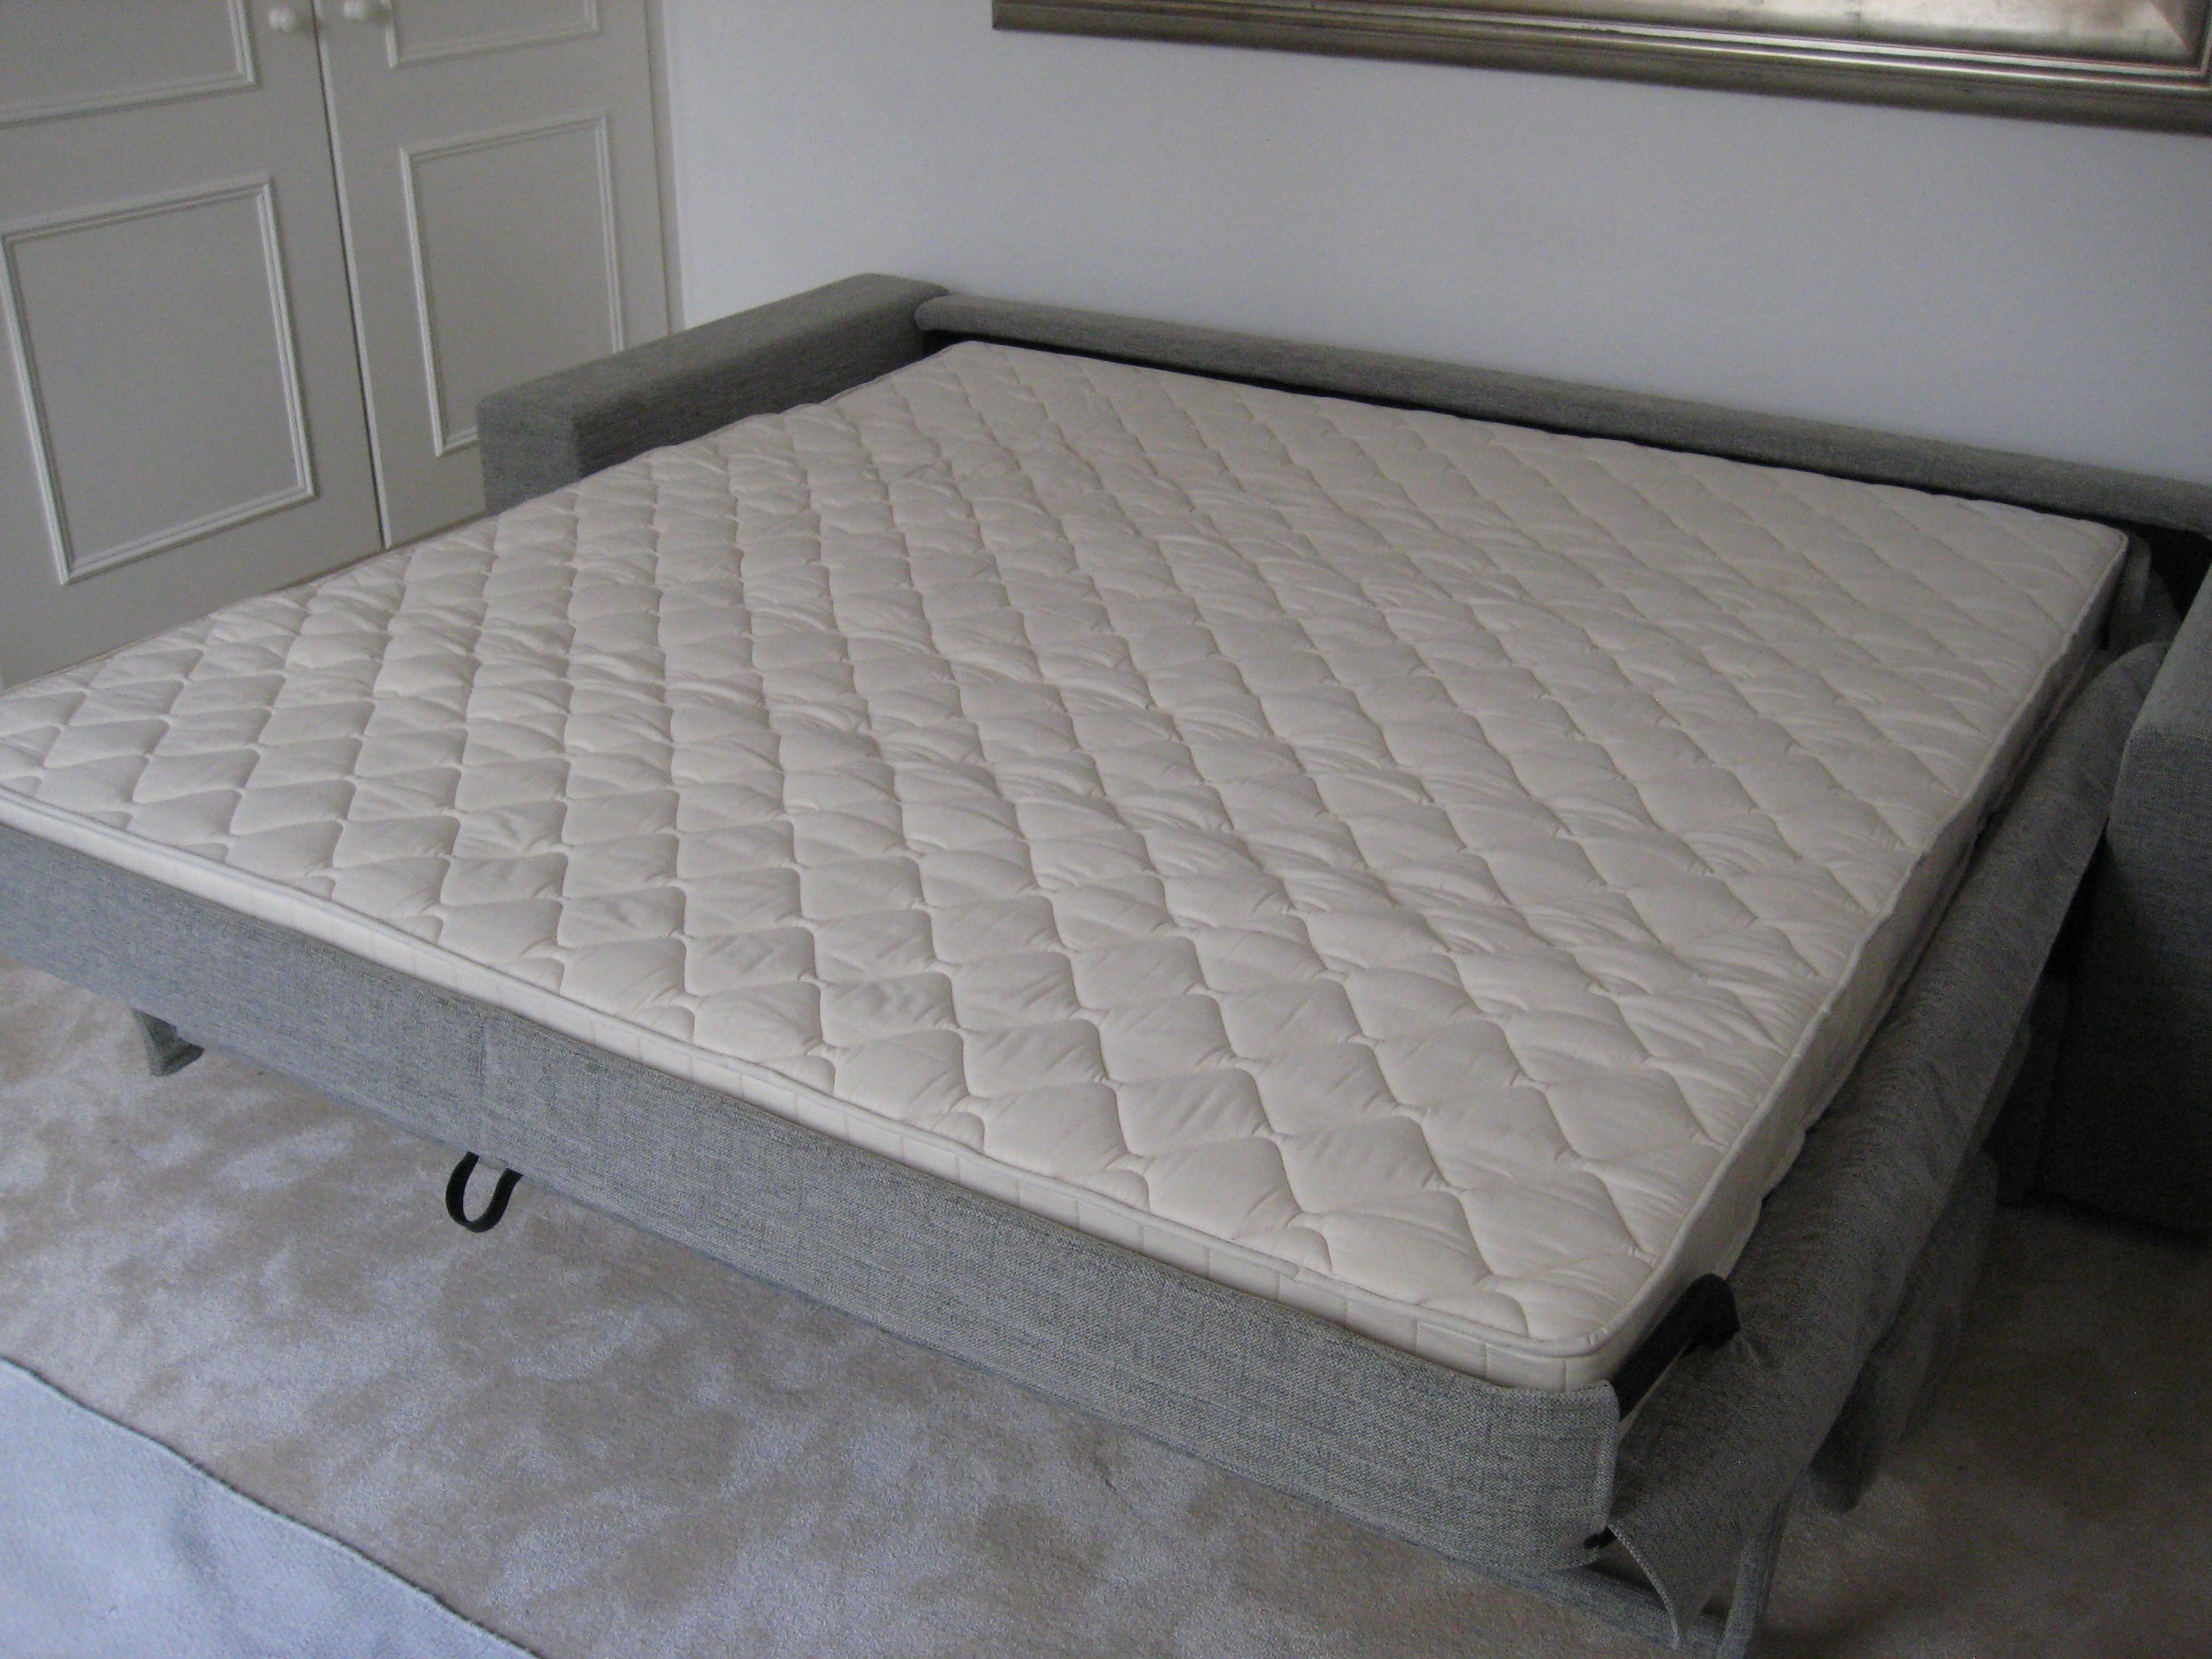 Lario Kingsize Sofabed 180 Cm X 200 With Individually Pocket Sprung Mattress